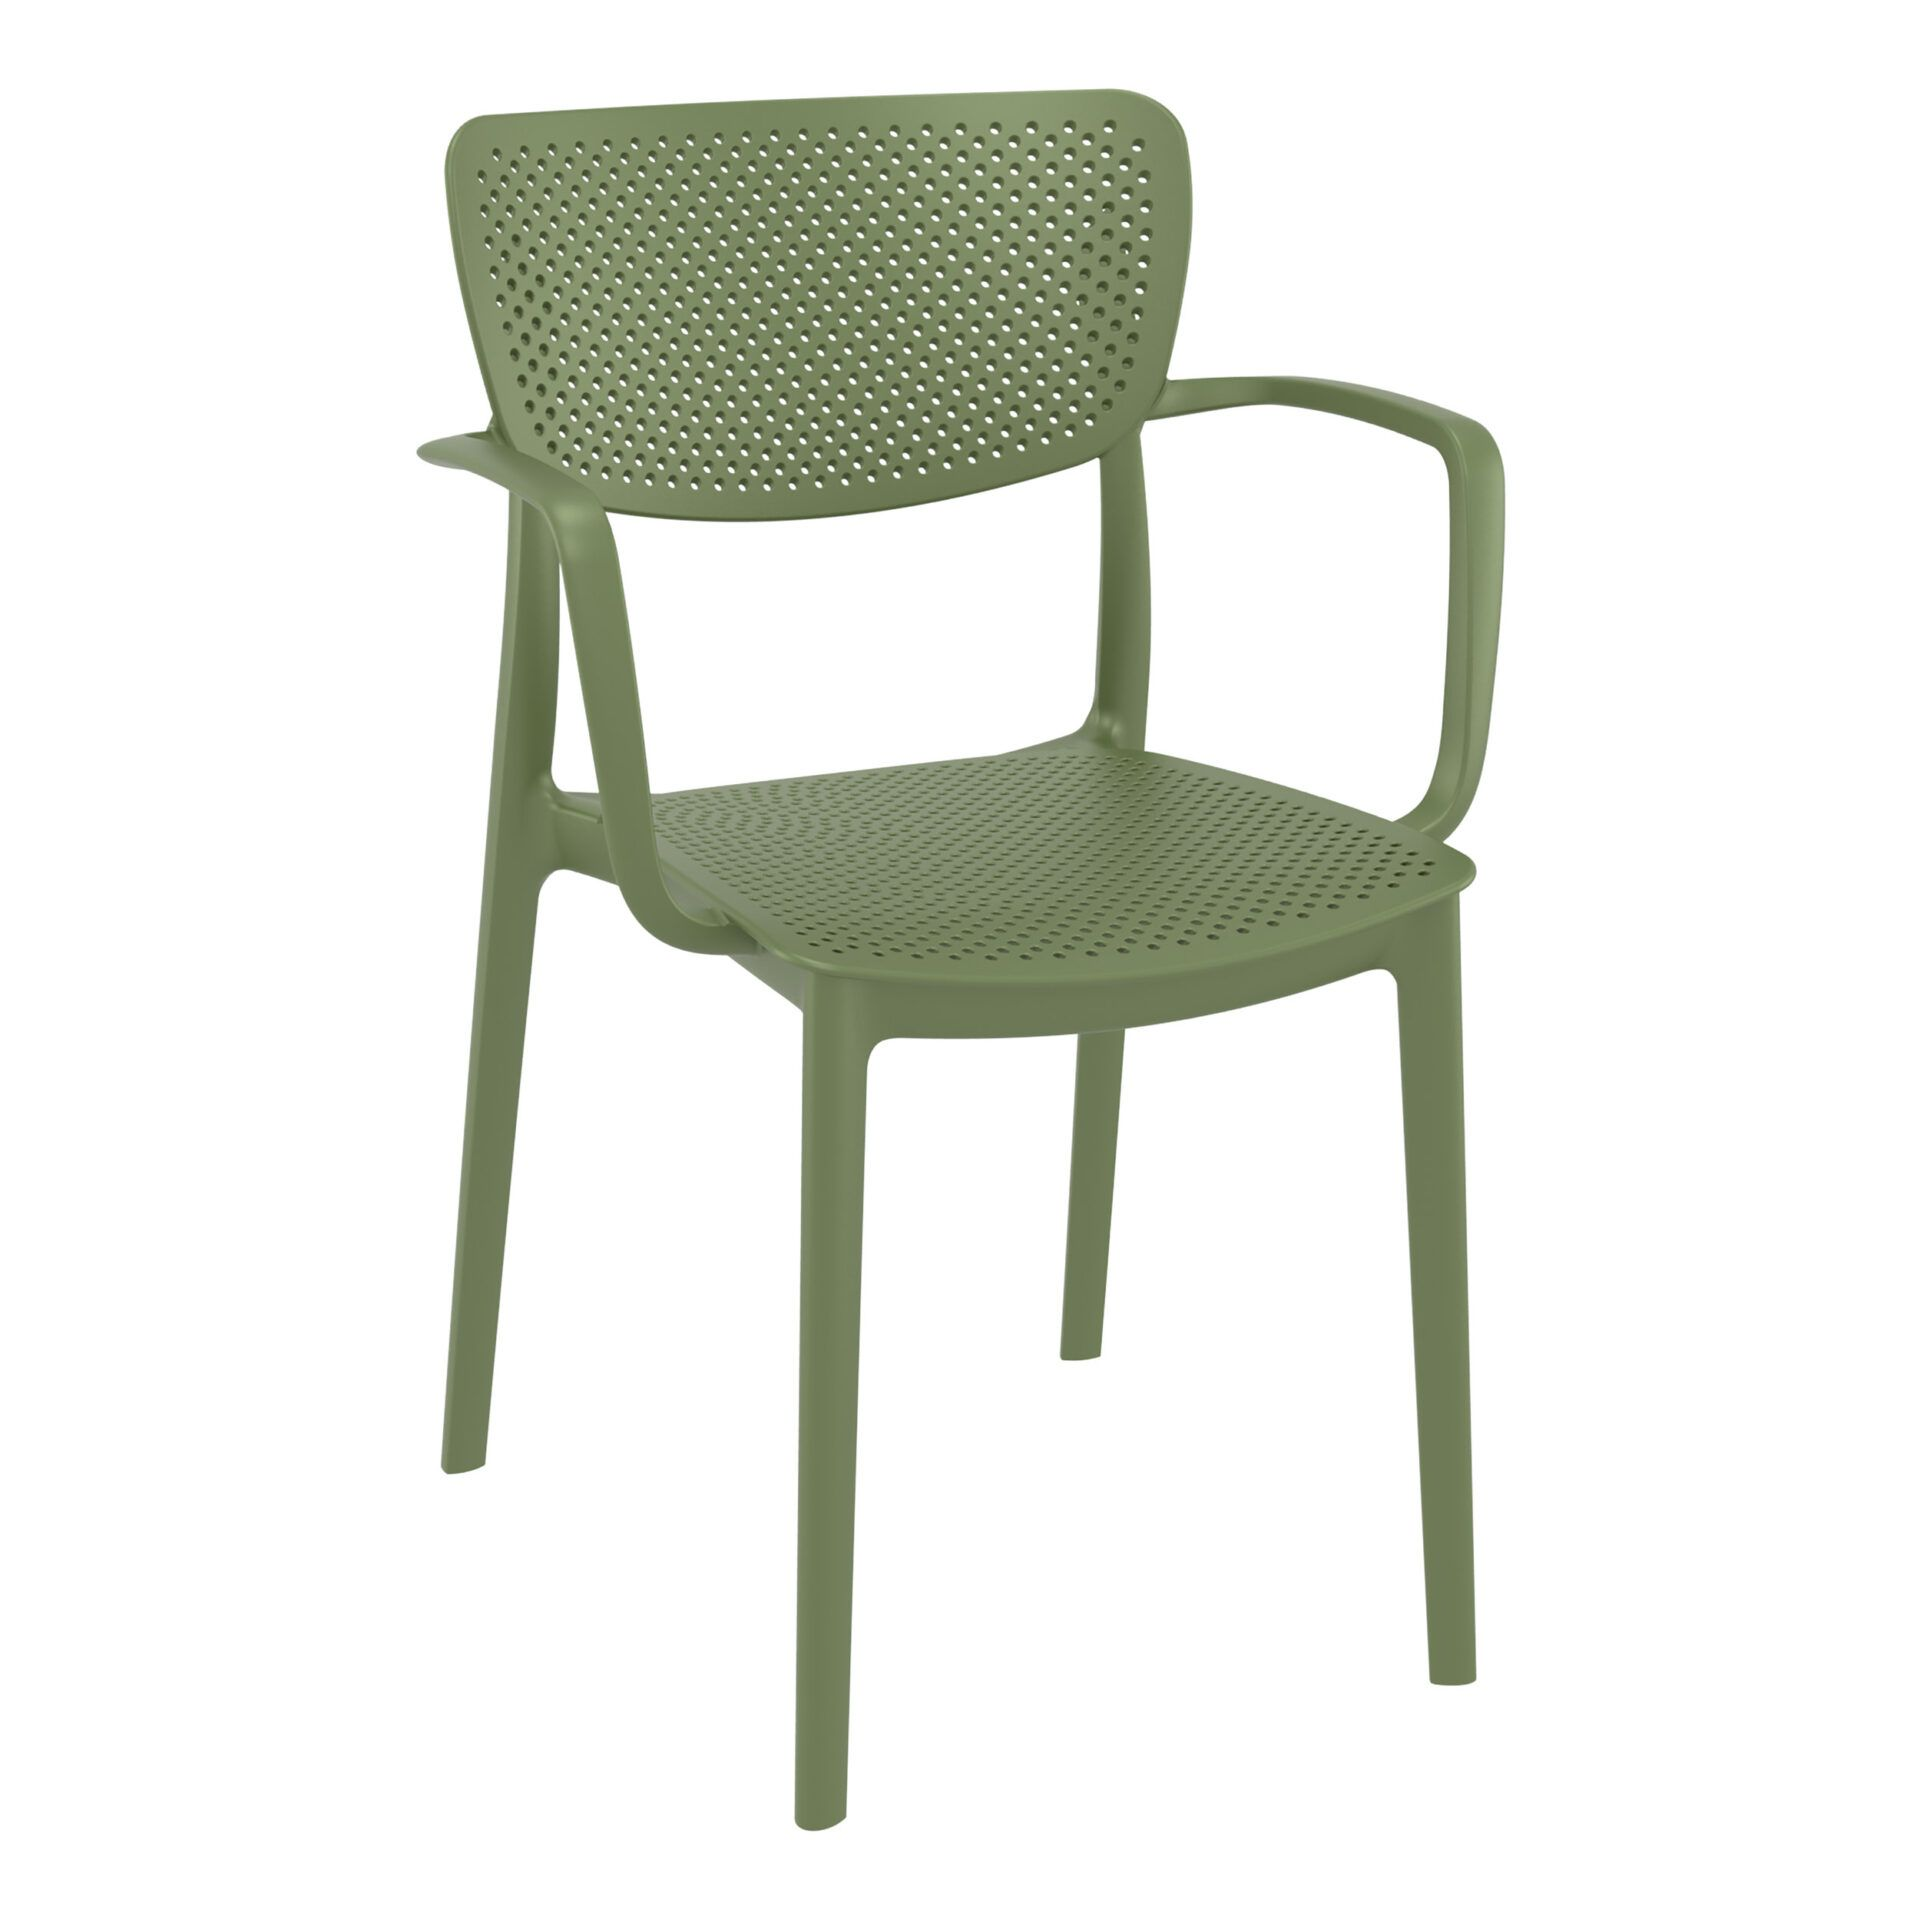 polypropylene hospitality seating loft armchair olive green front side